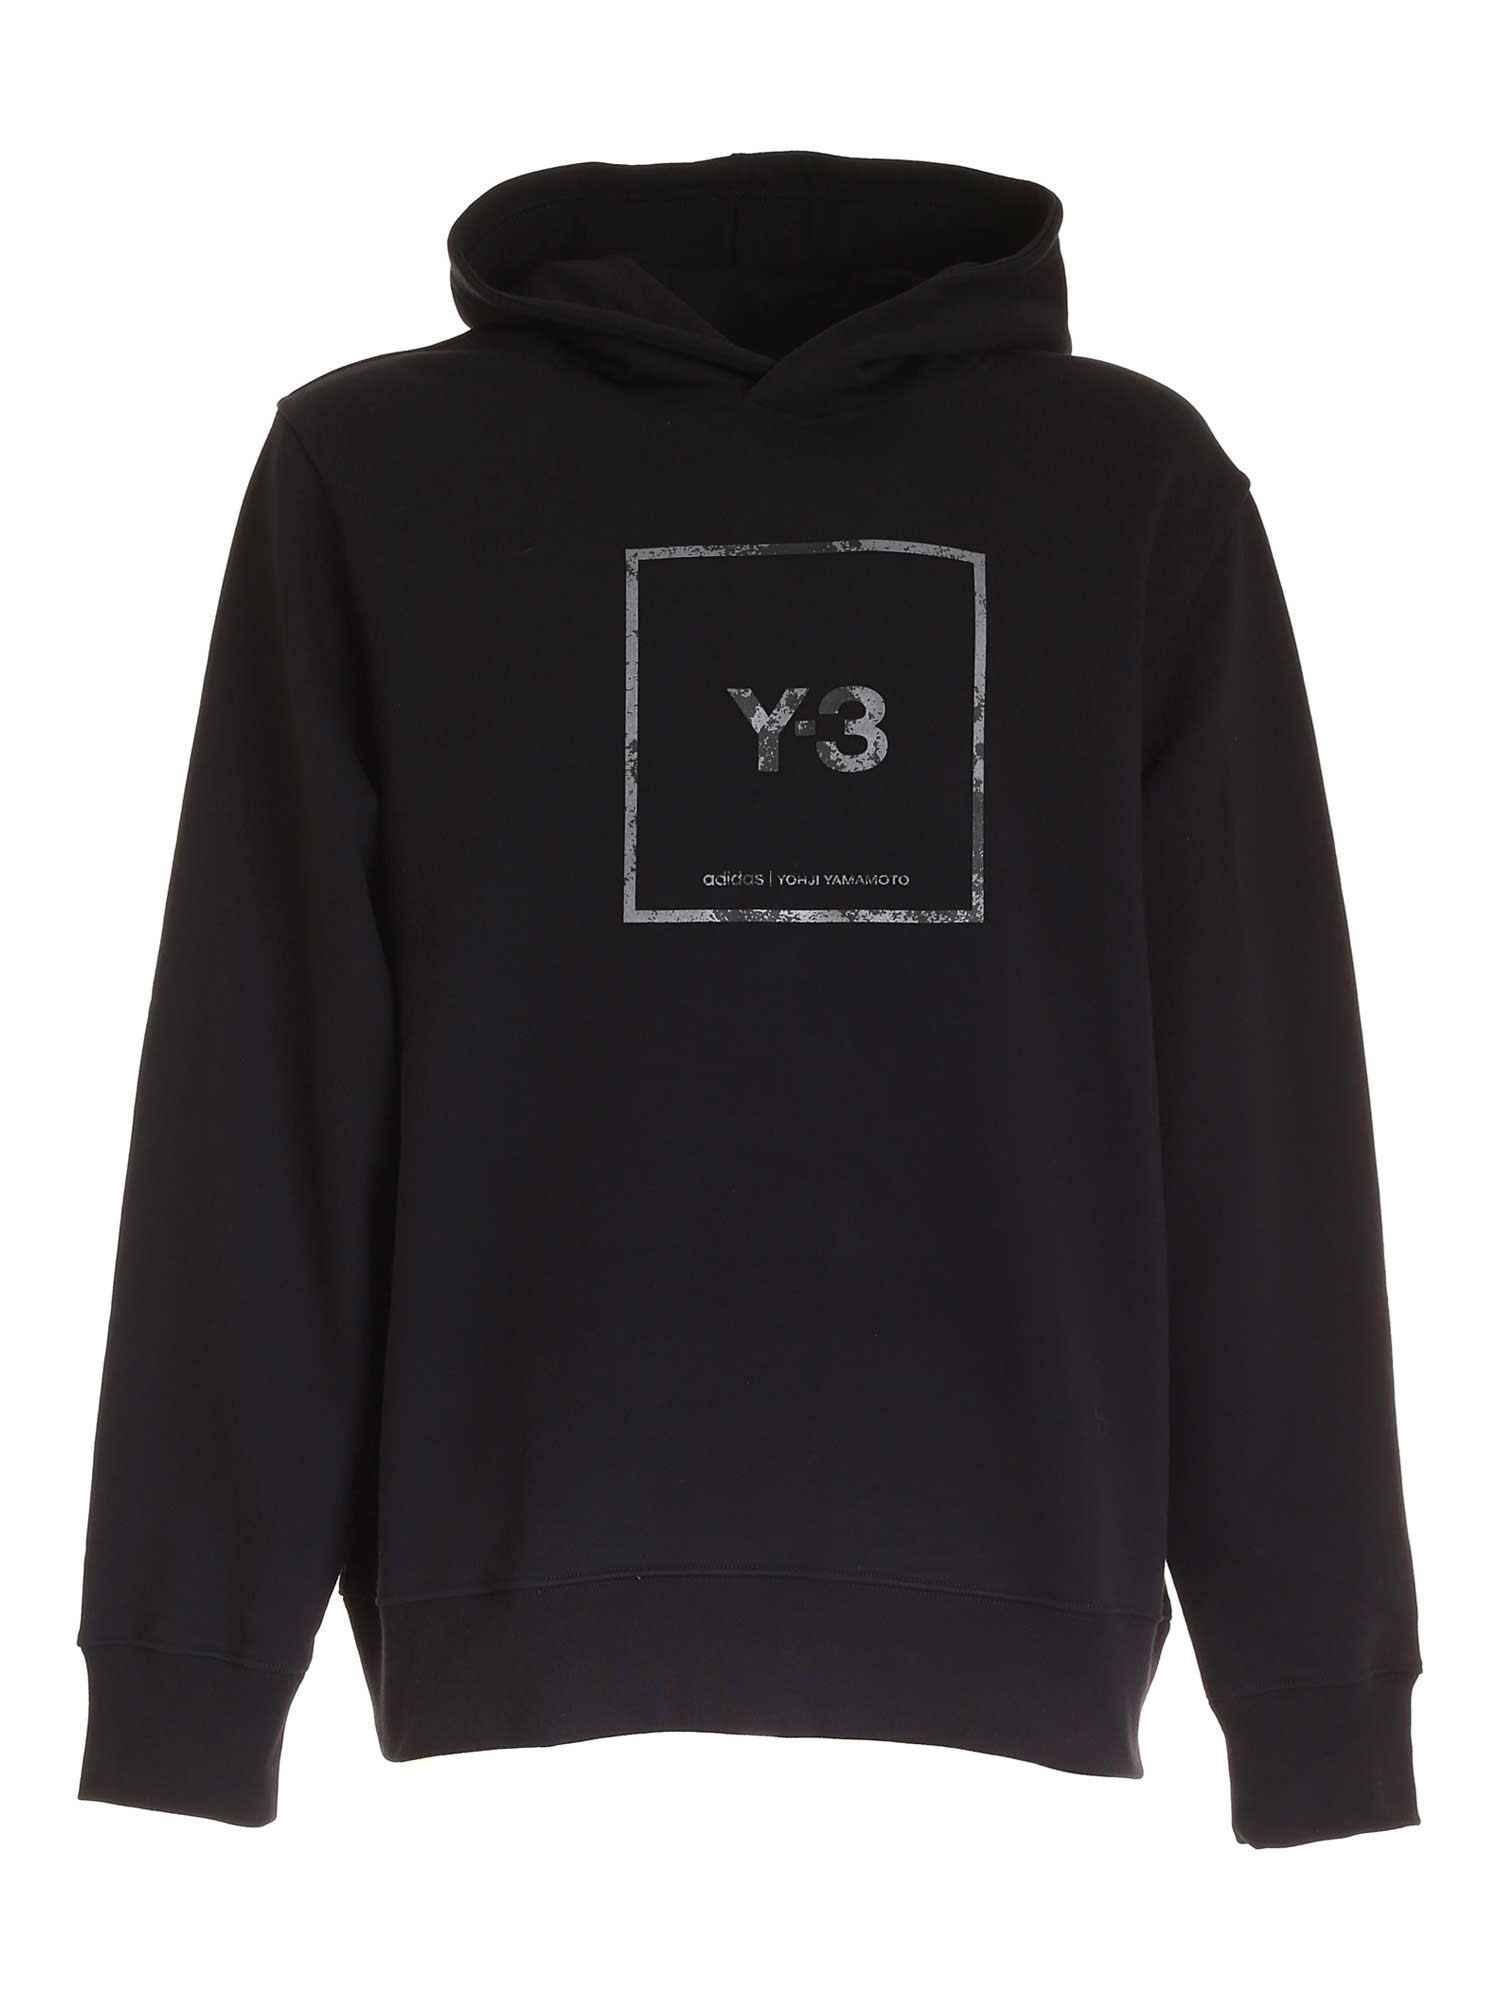 Y-3 OVER HOODED SWEATSHIRT IN BLACK